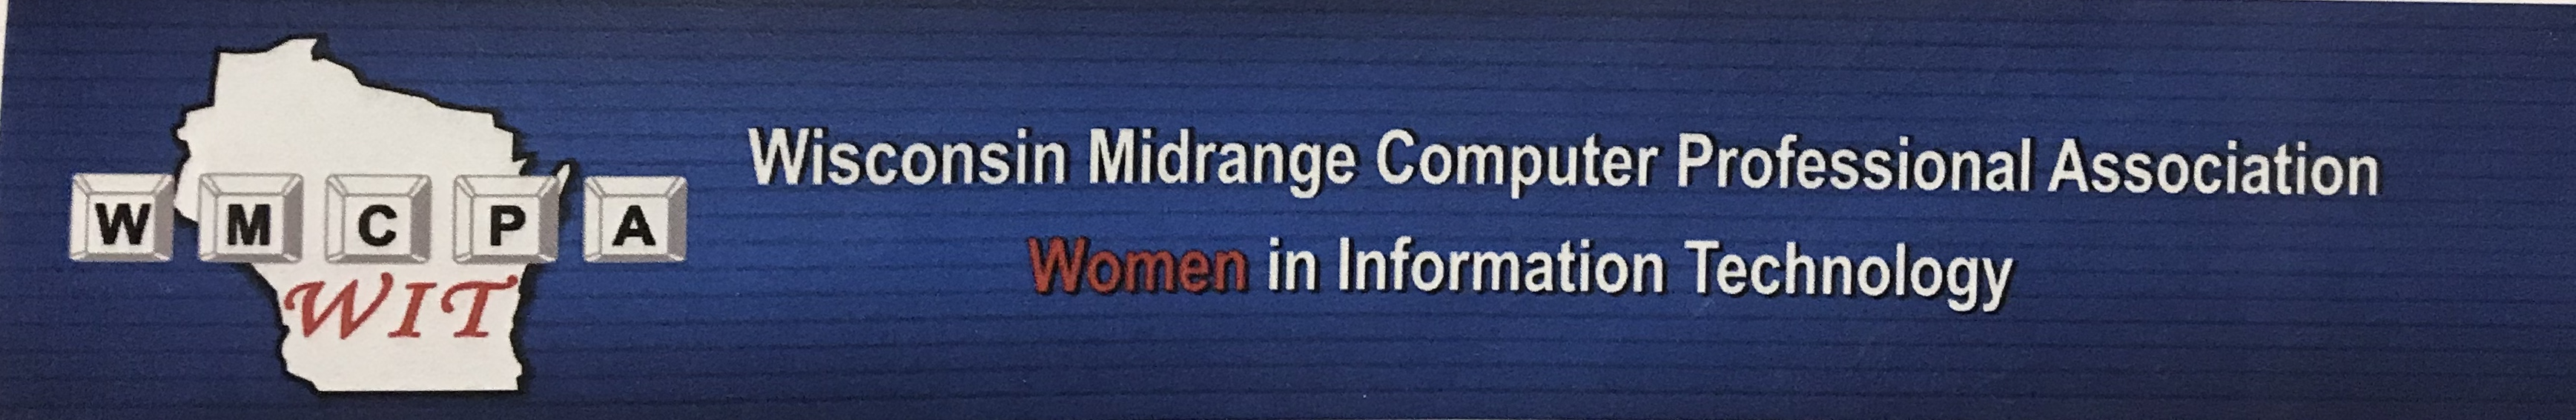 Women In IT - Banner